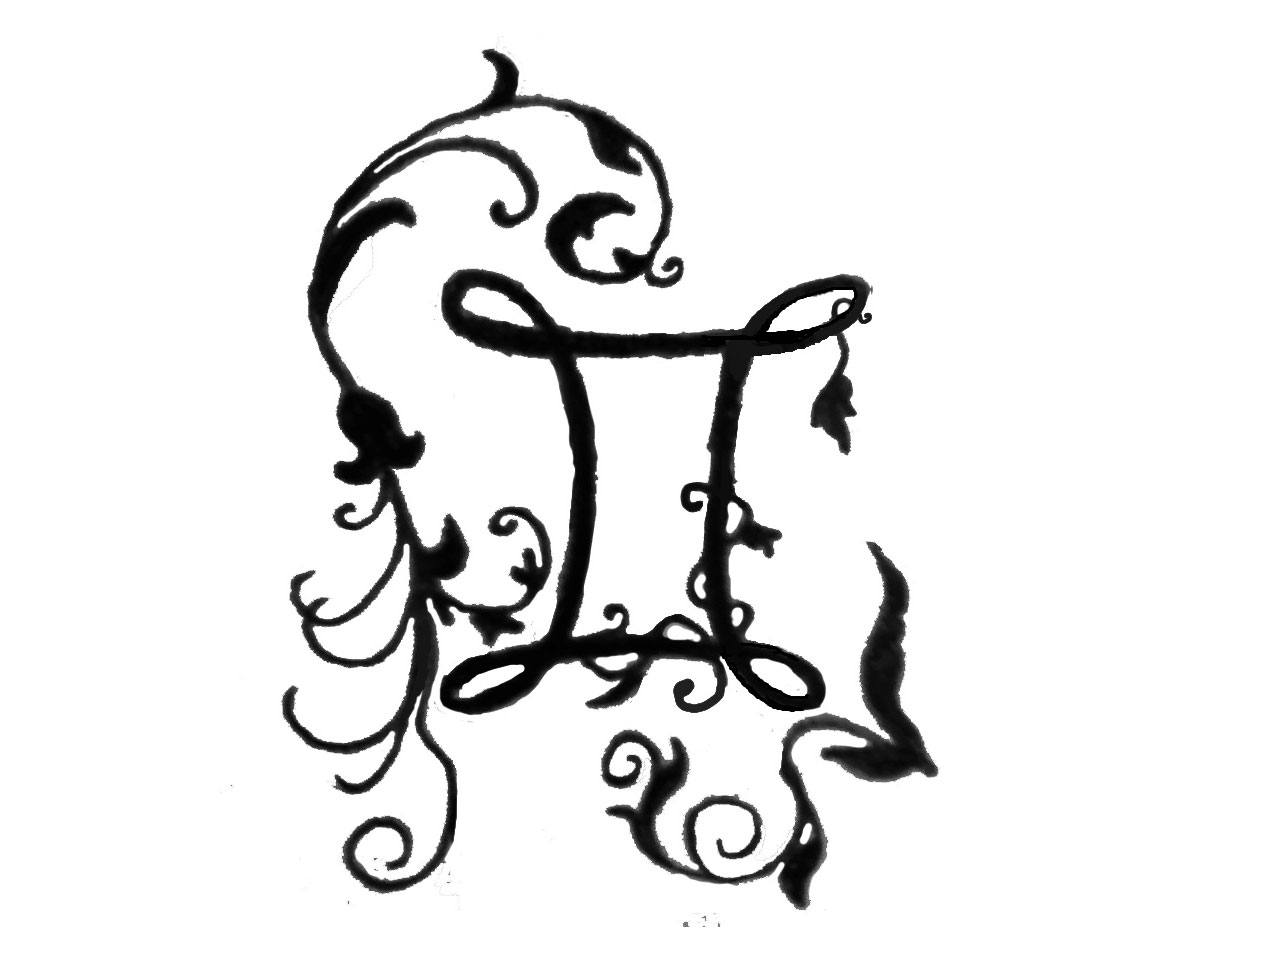 Gemini Tattoos Designs, Ideas and Meaning | Tattoos For You